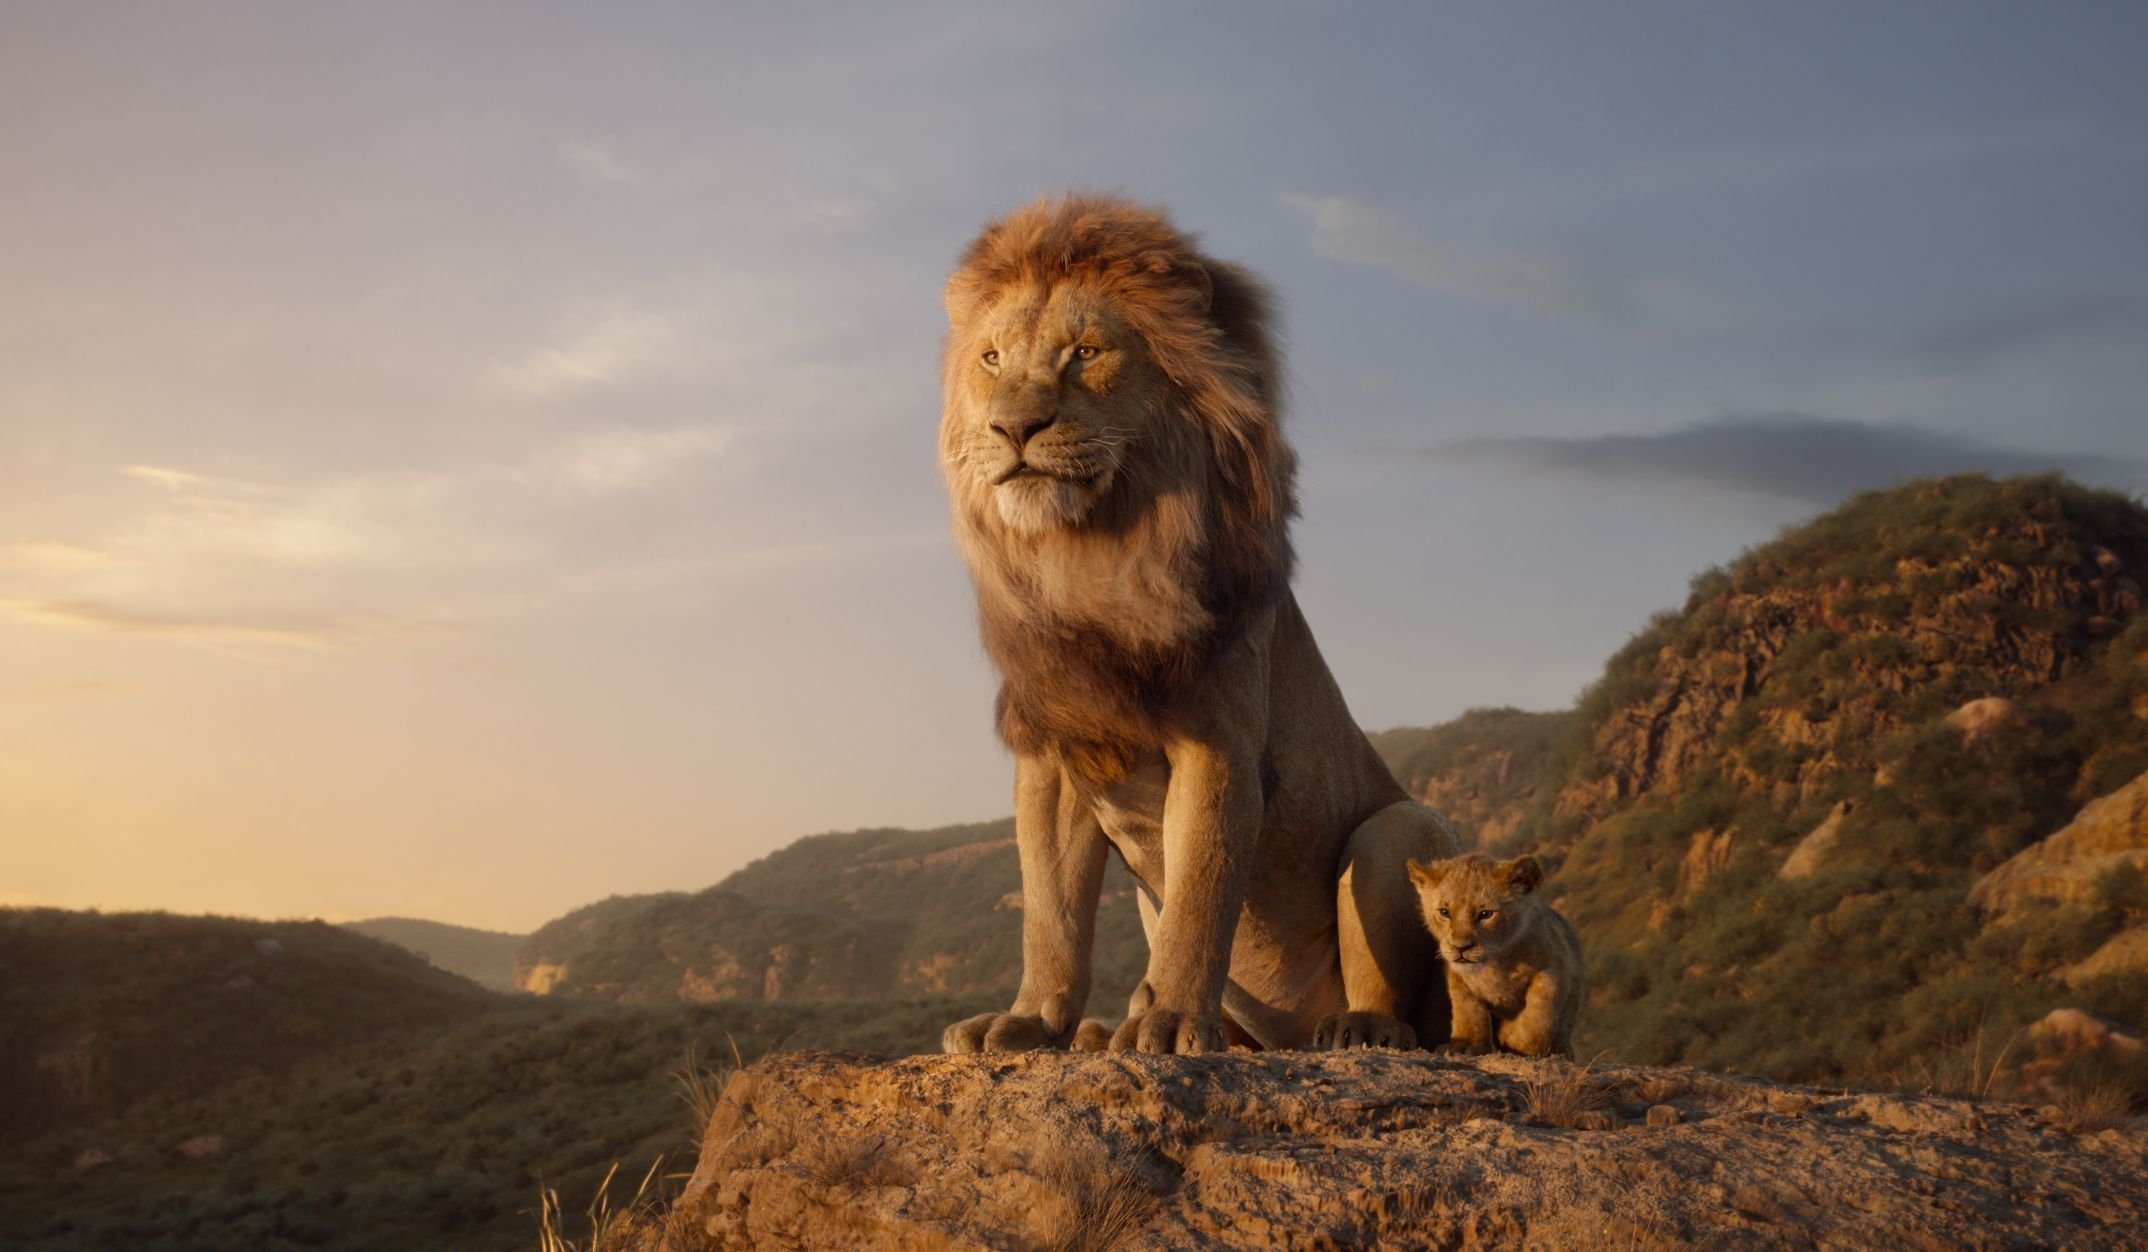 'The Lion King' rules with big box office opening for Disney